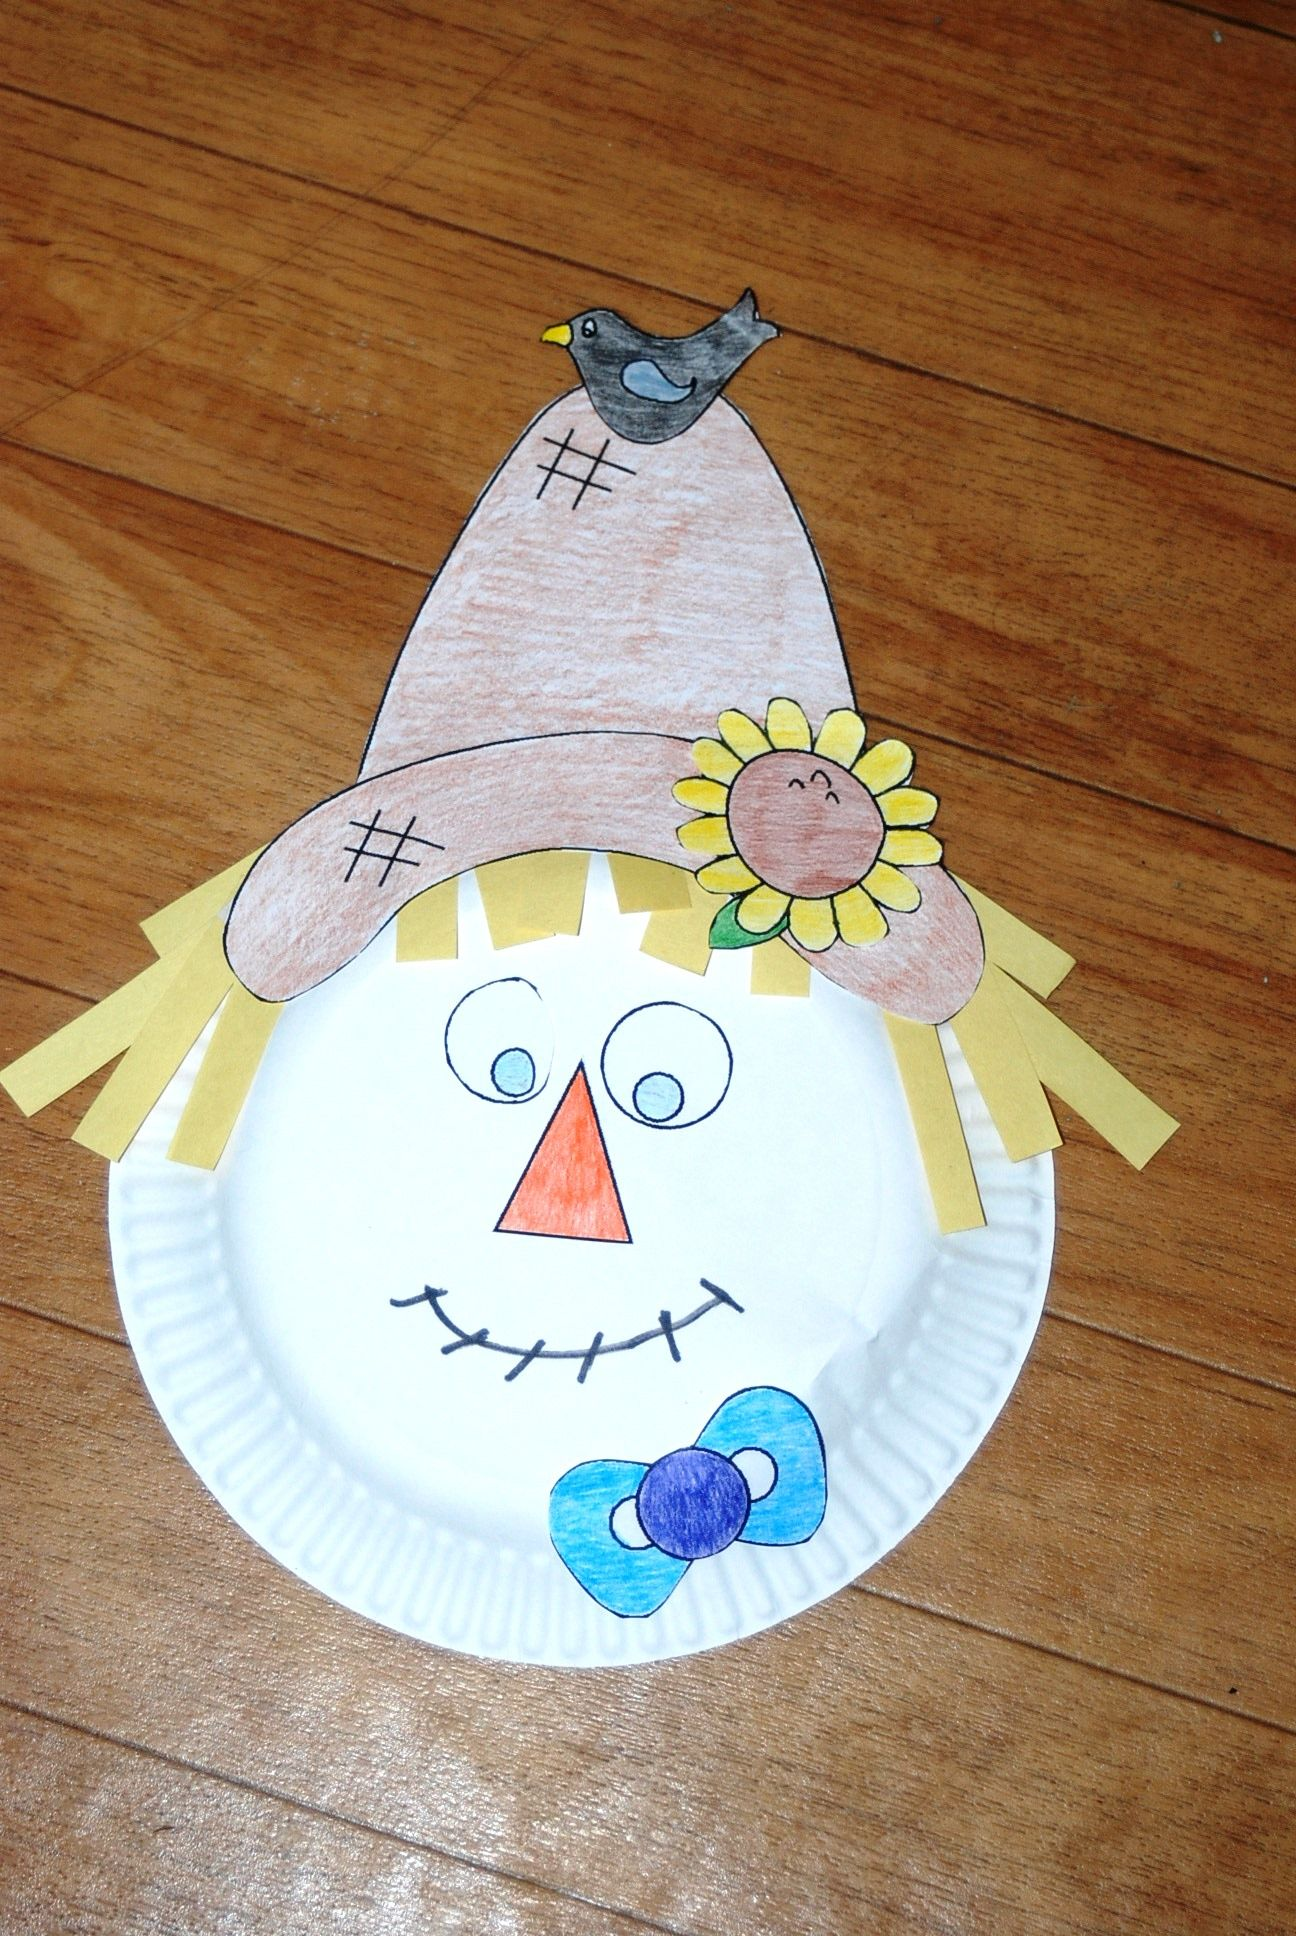 paper plate scarecrow • cut out hands and hat and glue to plate • cut and glue strips of yellow construction paper for hair • glue wiggle eyes, cut out nose and draw the rest of the face.